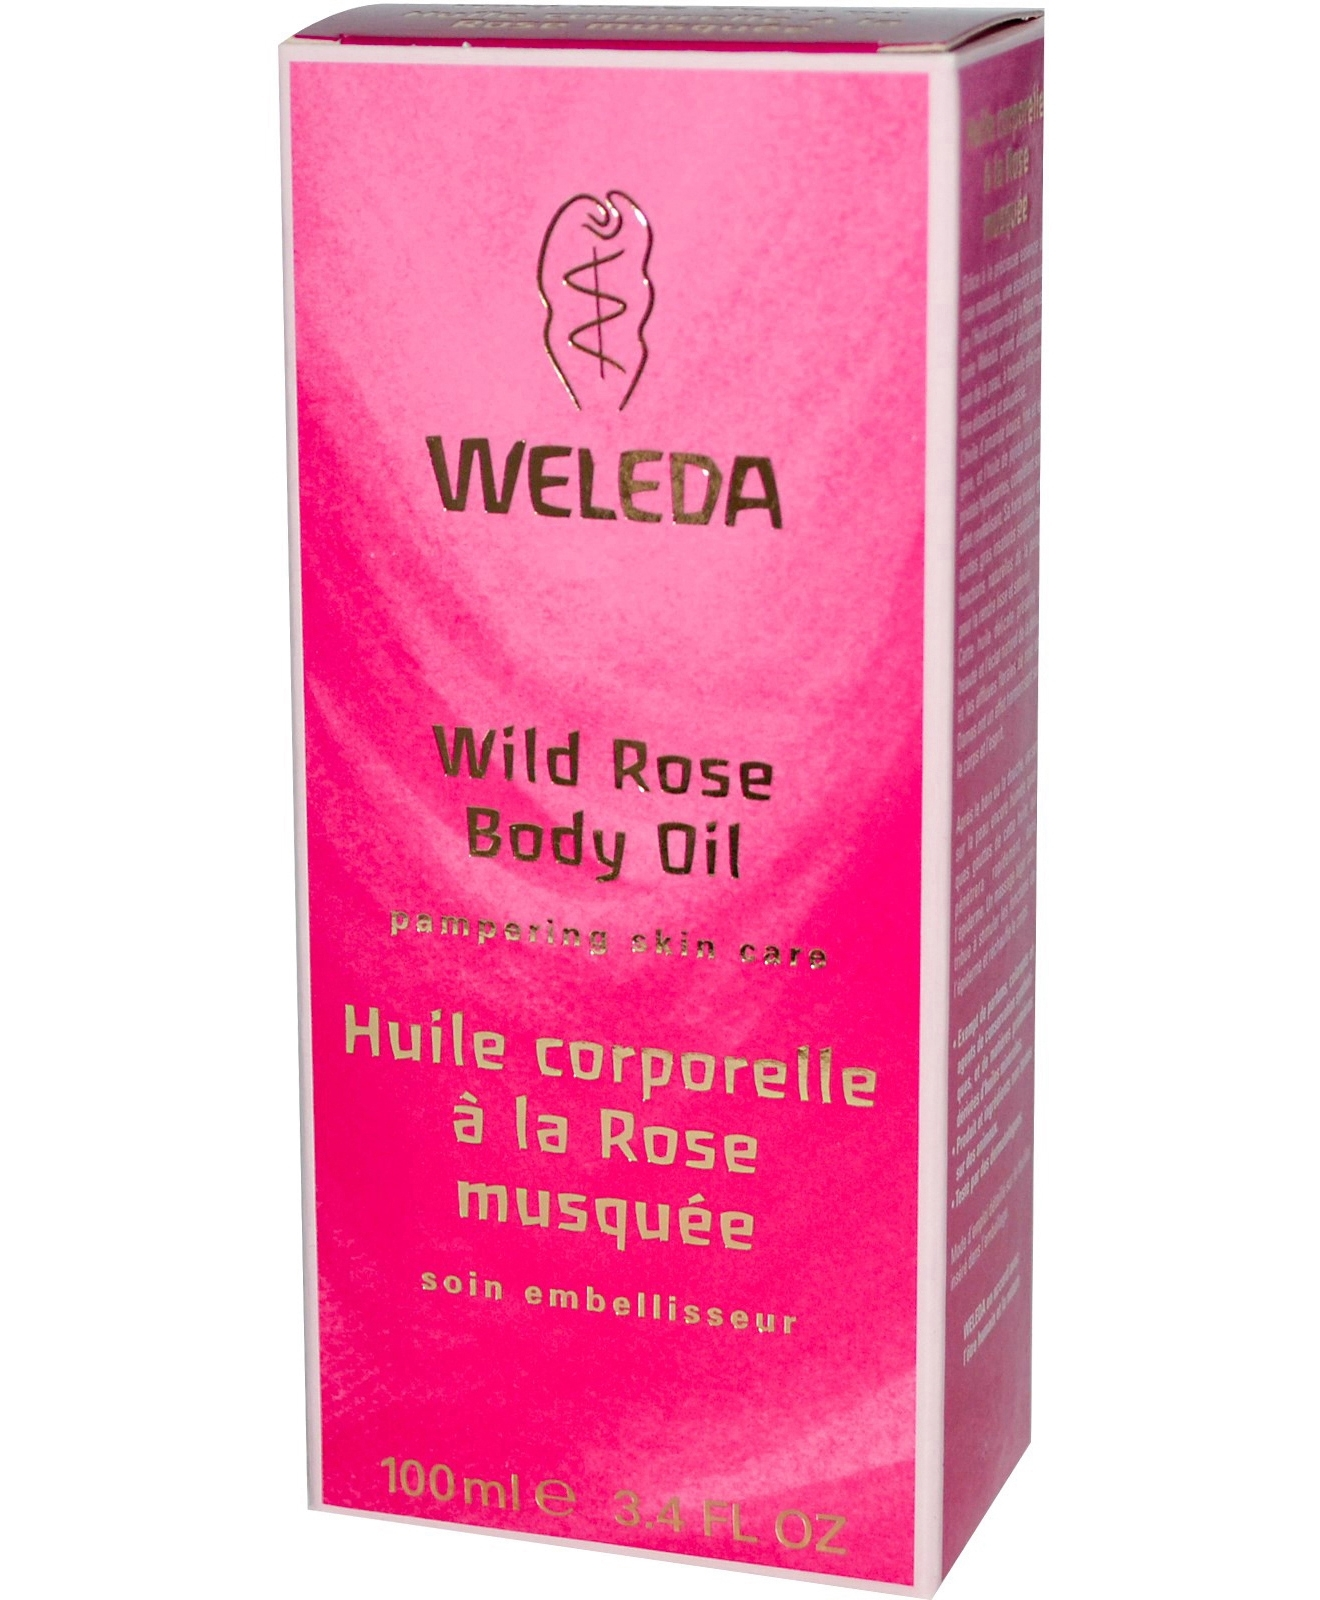 Wild Rose Body Oil 3.4 oz